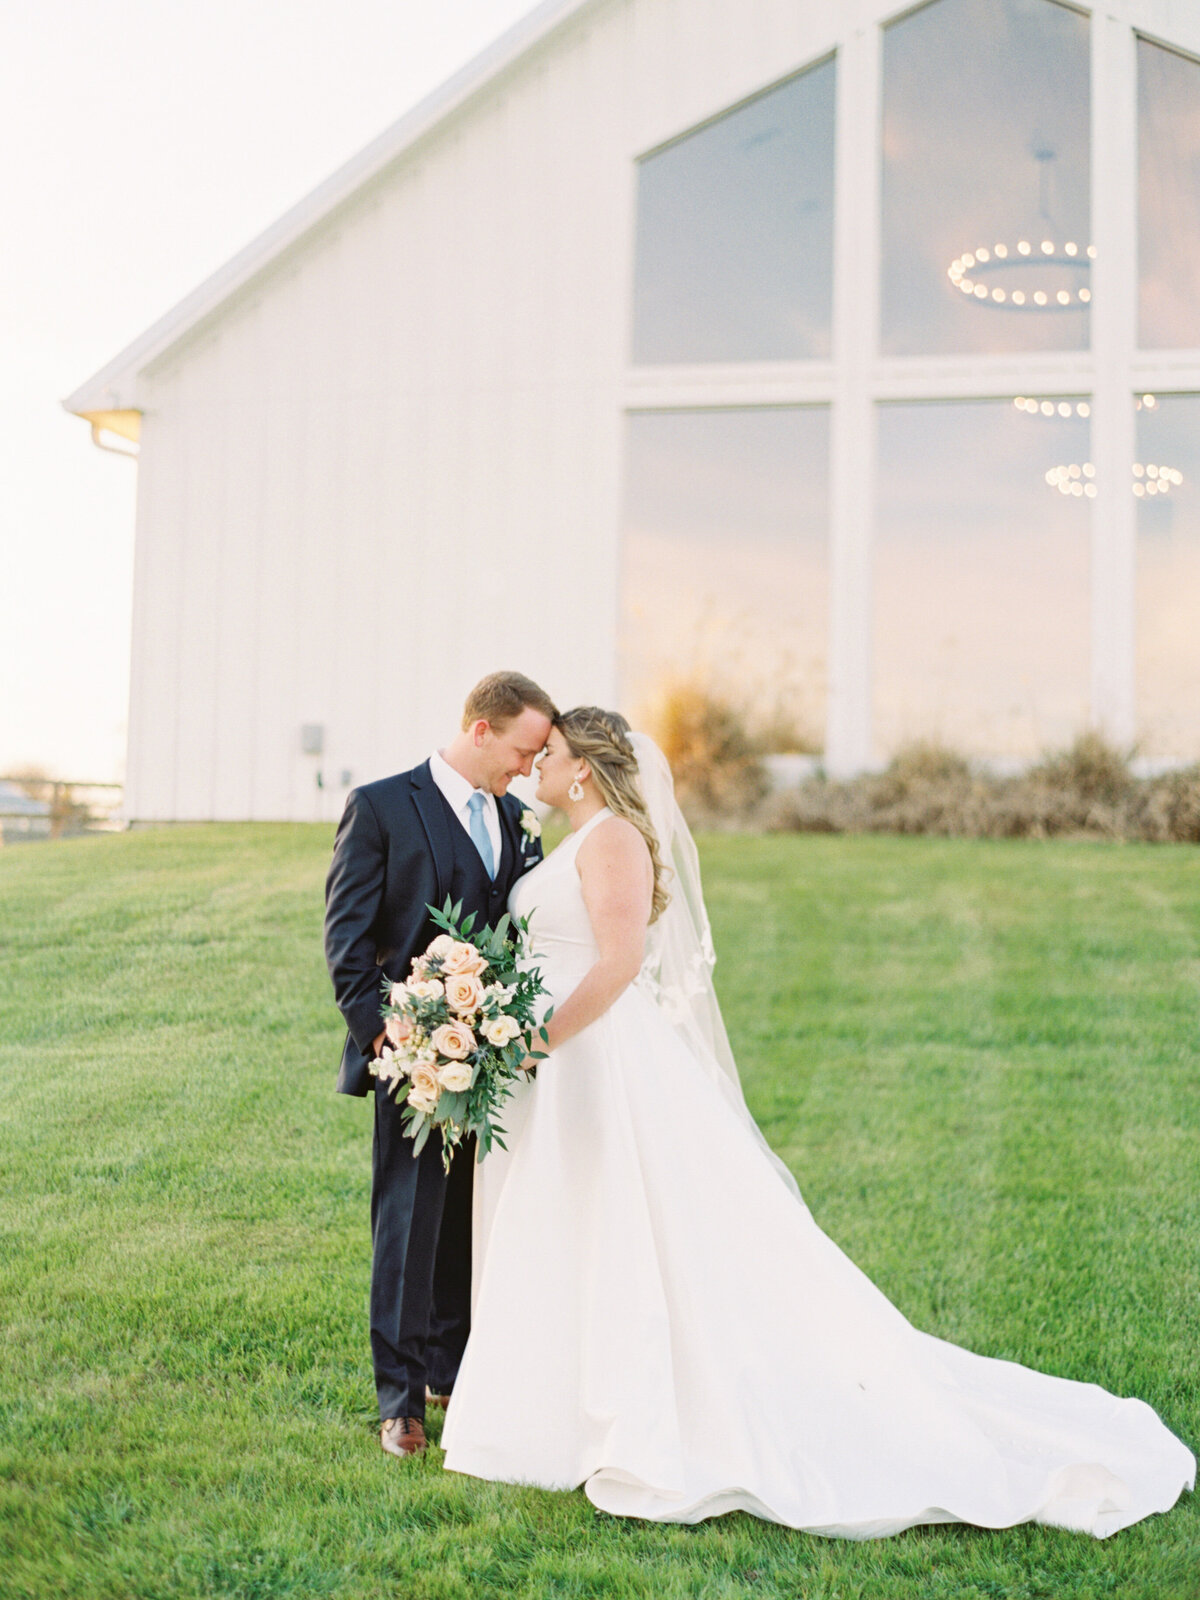 the-farmhouse-wedding-houston-texas-wedding-photographer-mackenzie-reiter-photography-77